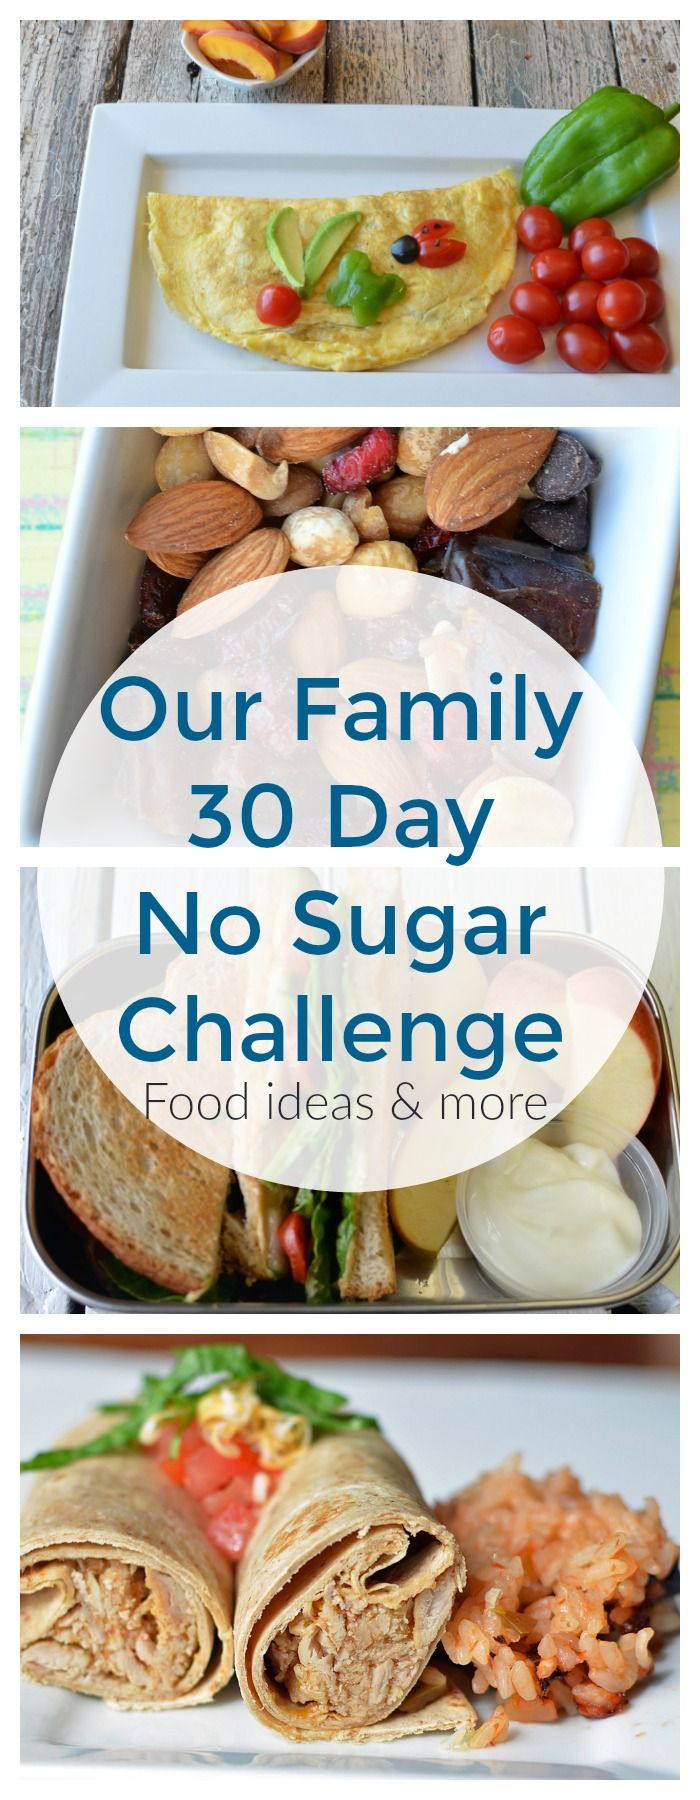 30 Day No Sugar Family Challenge With Food Ideas Articles No